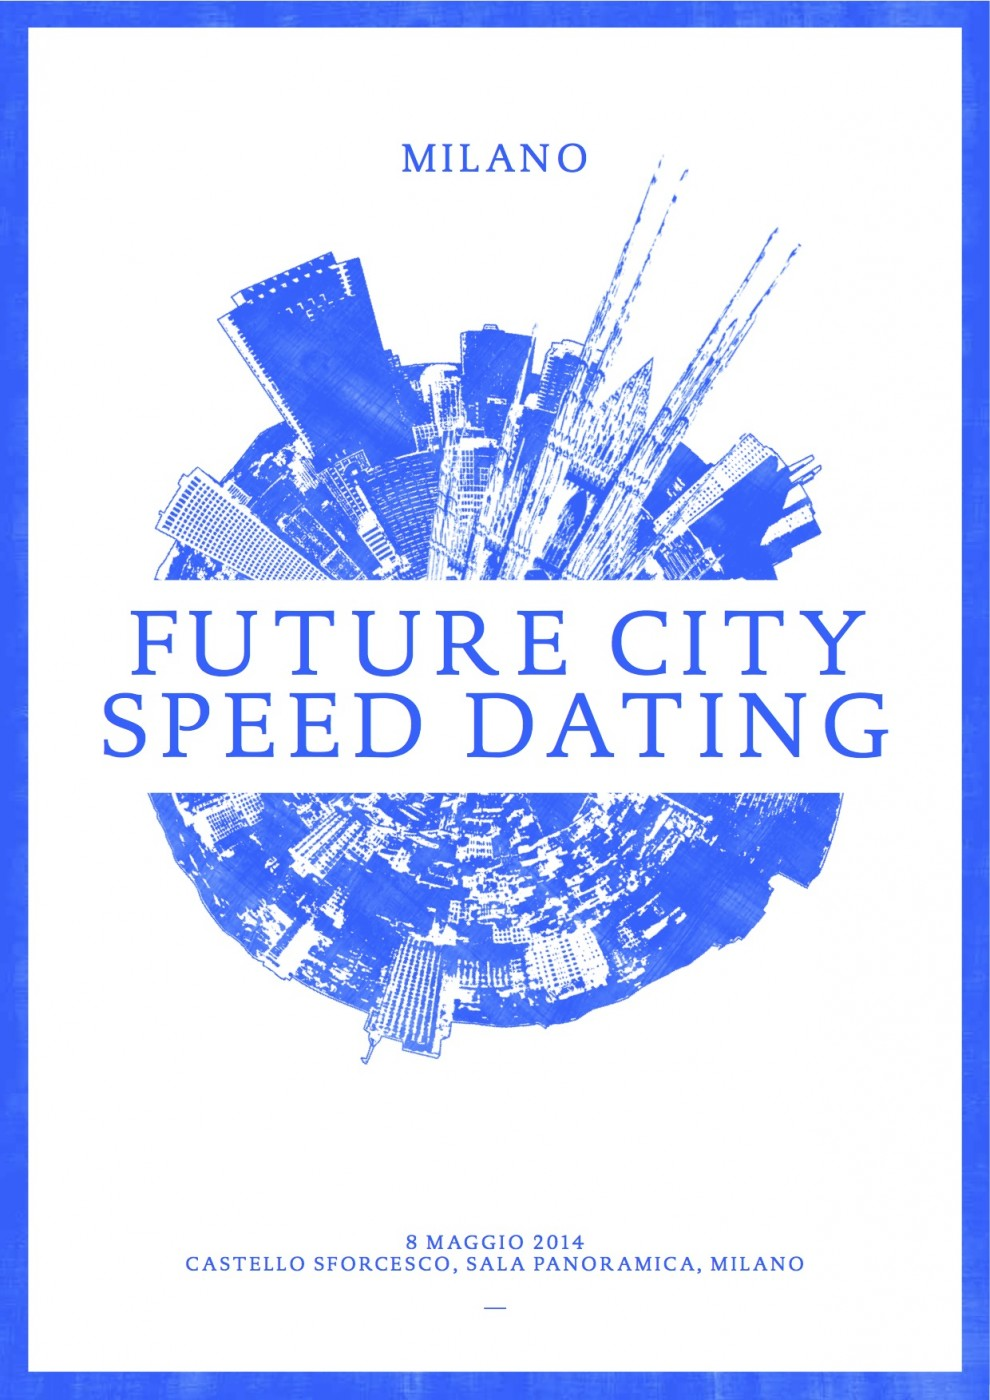 speed dating in nyc Online dating become very simple, easy and quick, create your profile and start looking for potential matches right now.